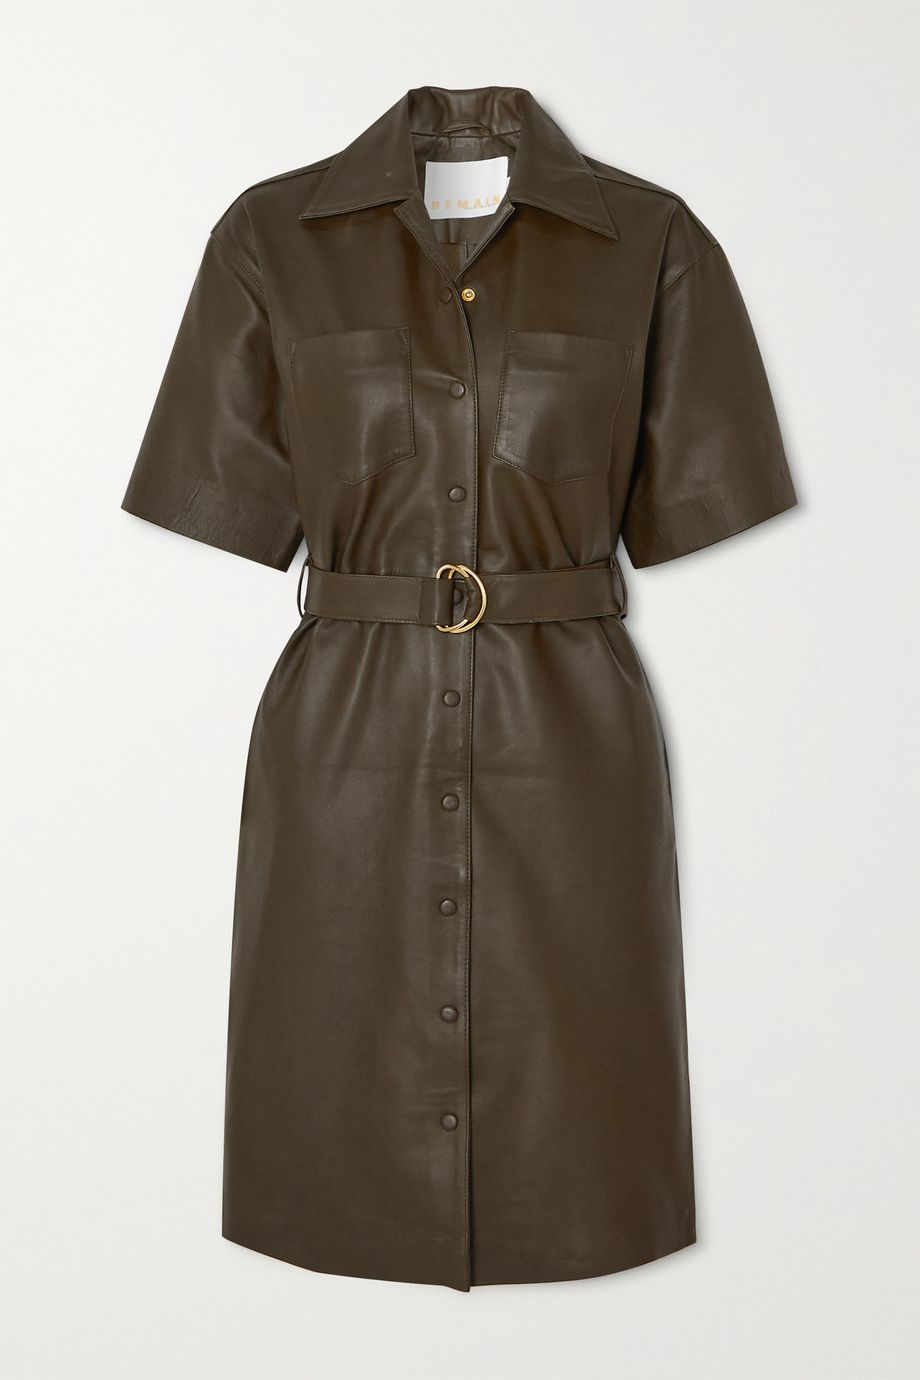 REMAIN Birger Christensen Puglia belted leather dress